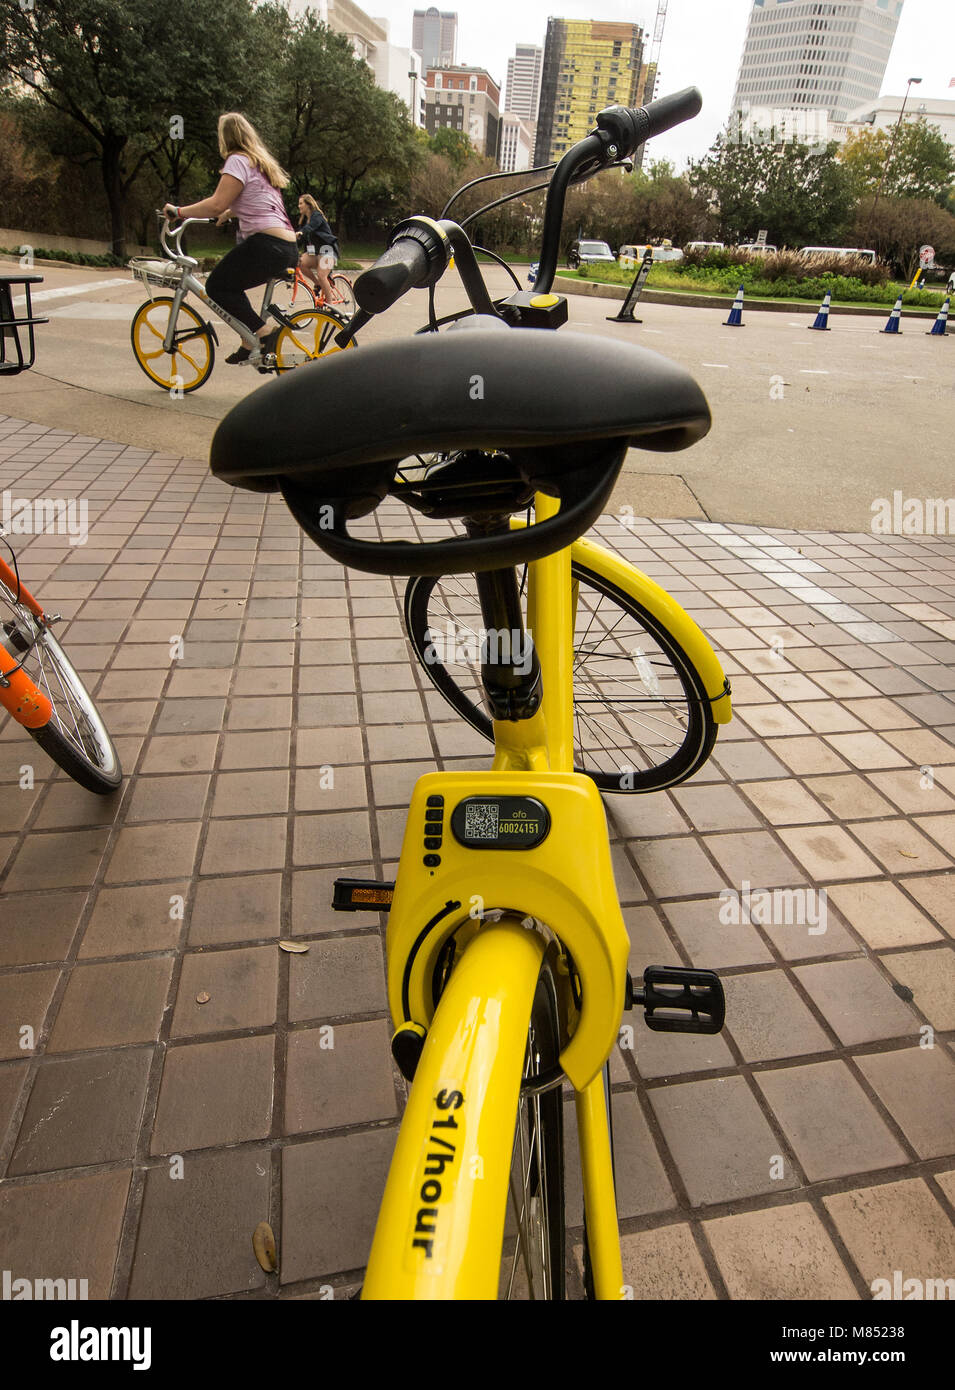 Dockless bike-sharing are showing up in urban cities. In Dallas, Texas, in front of the Reunion Hotel the bikes - Stock Image